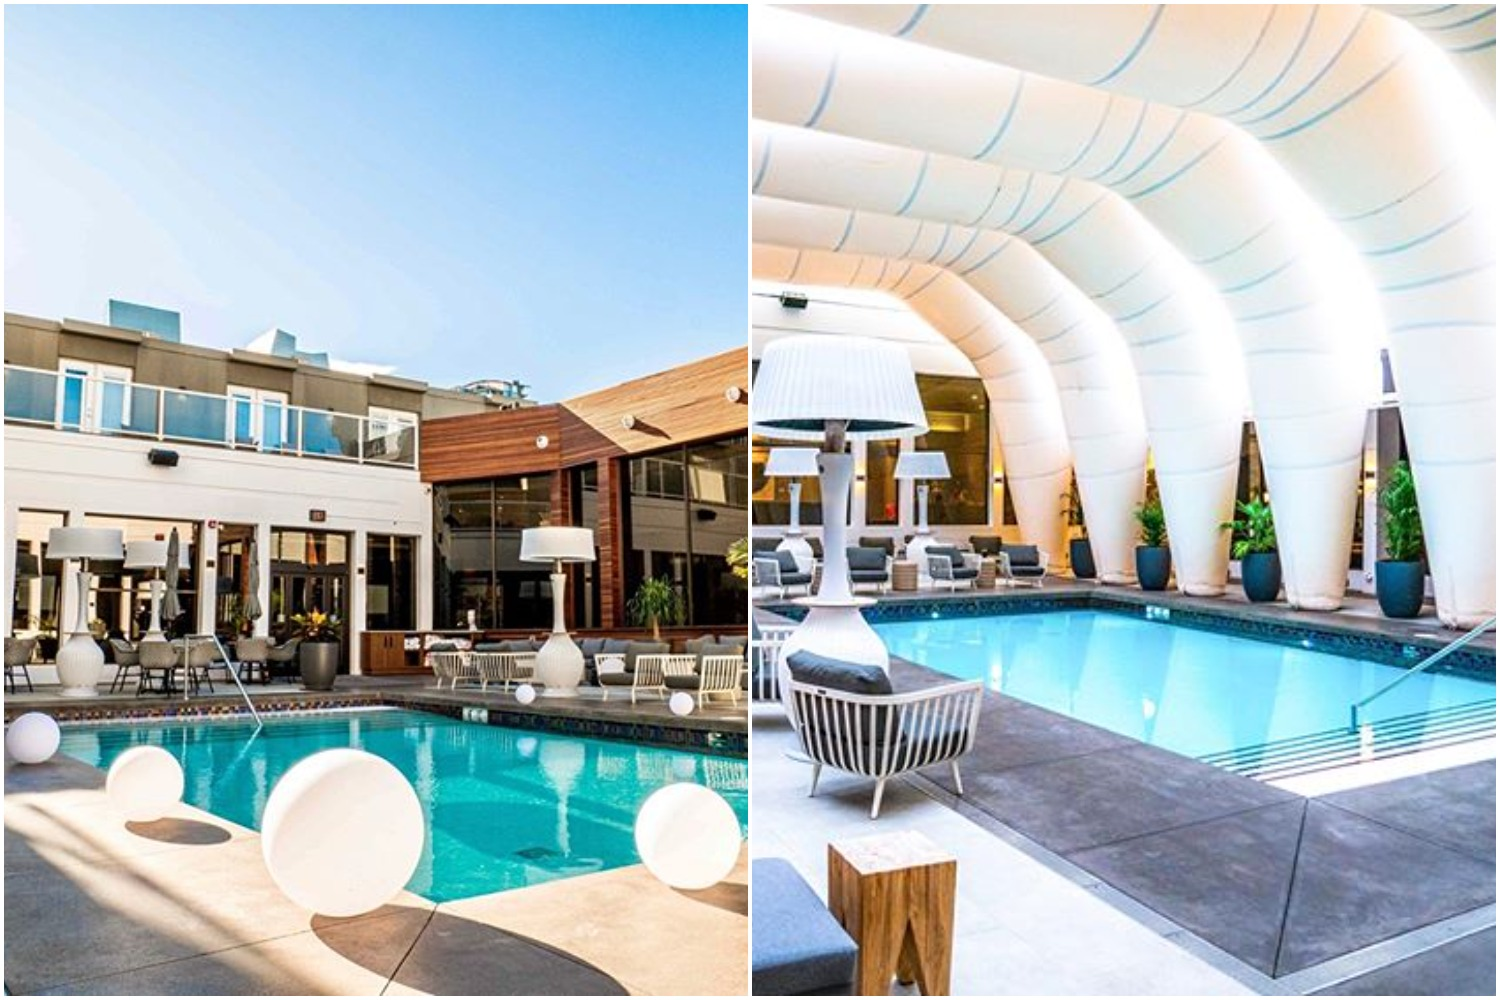 Hotel Arts to winterize pool with inflatable 'toque' and reopen this October calgary